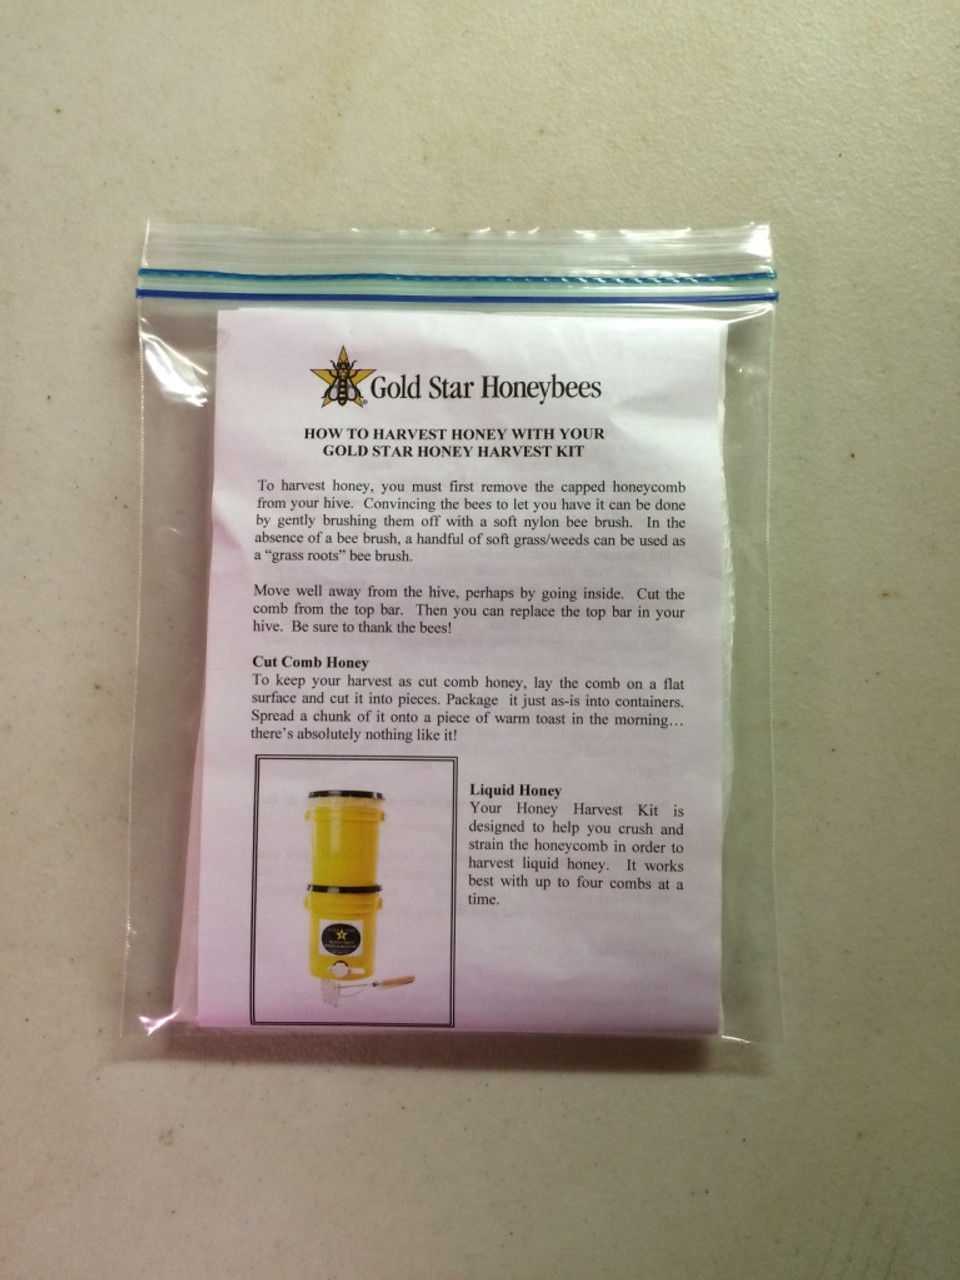 Always nice to have a pair of spare strainers around for your Gold Star Honey Harvest kit.